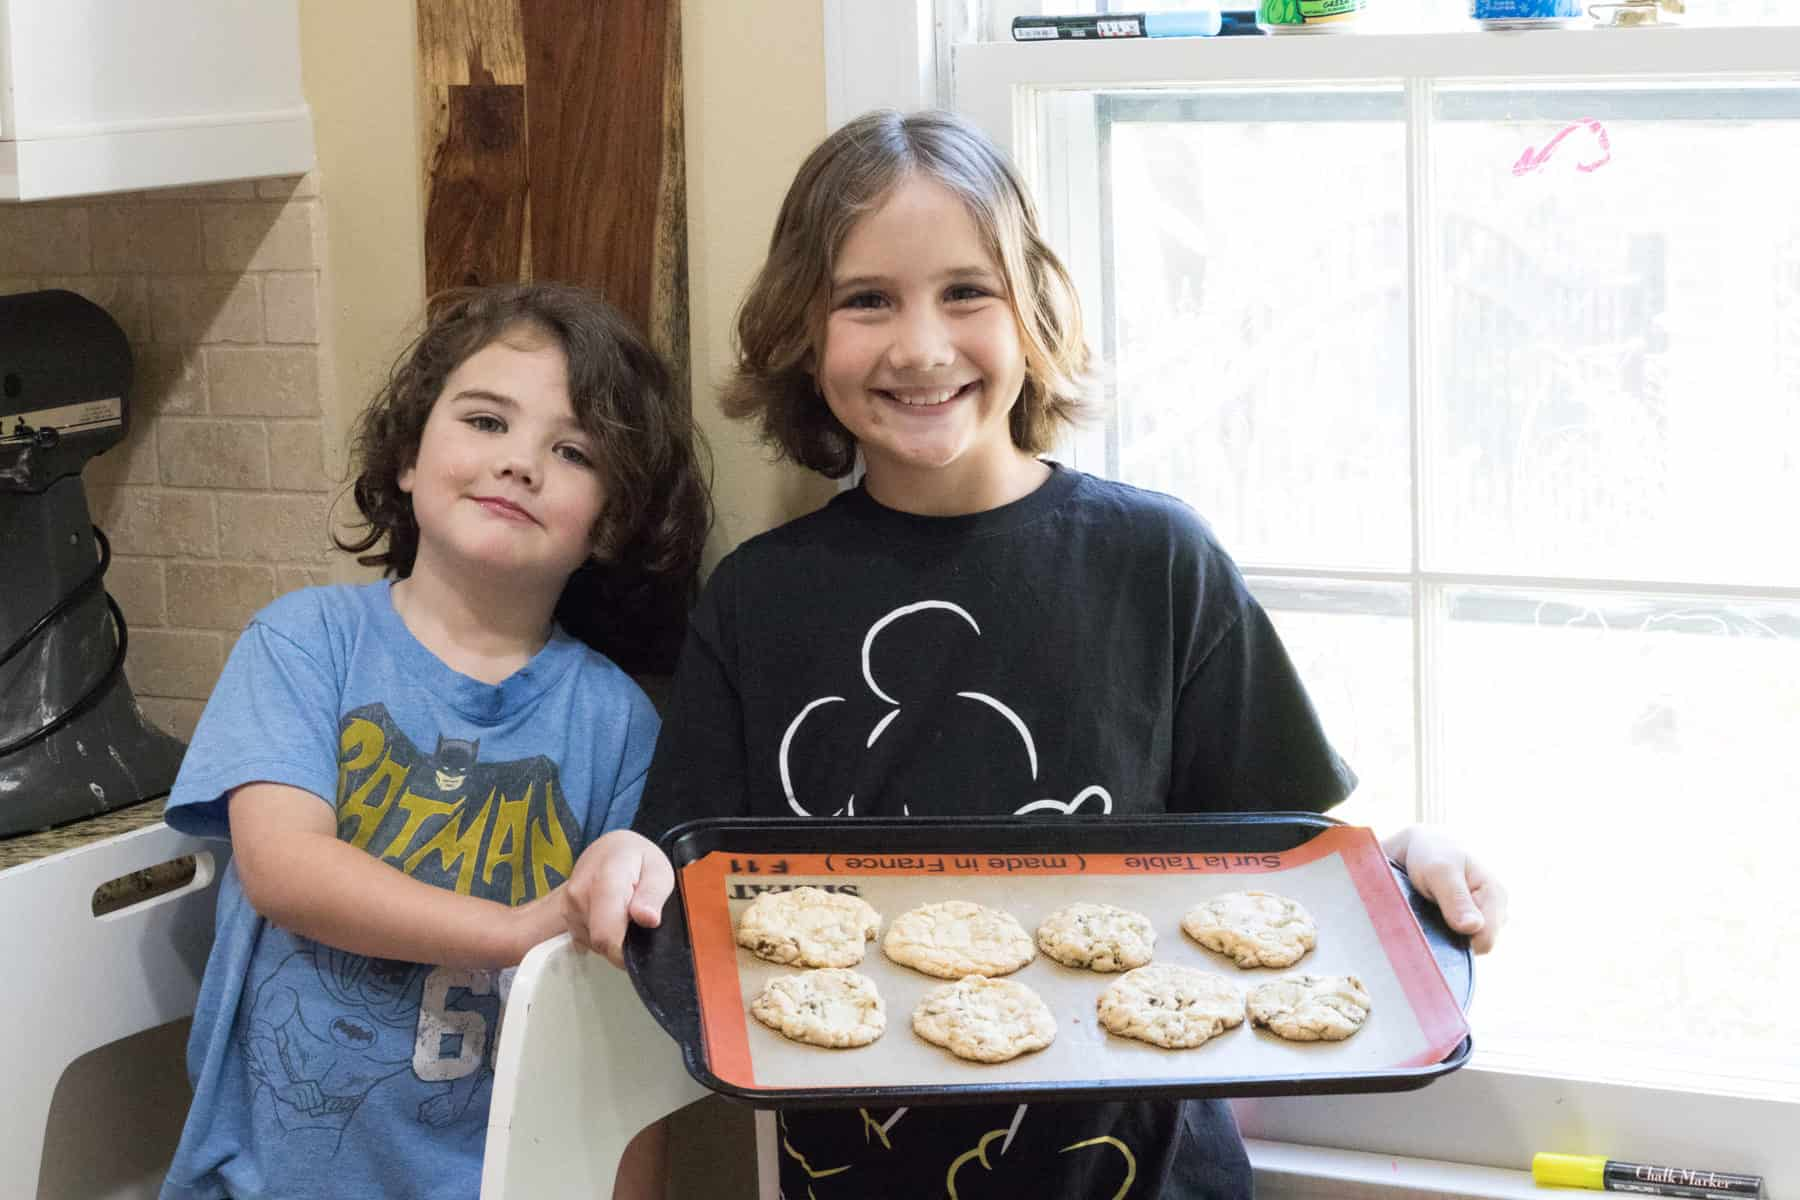 the boys baking cookies